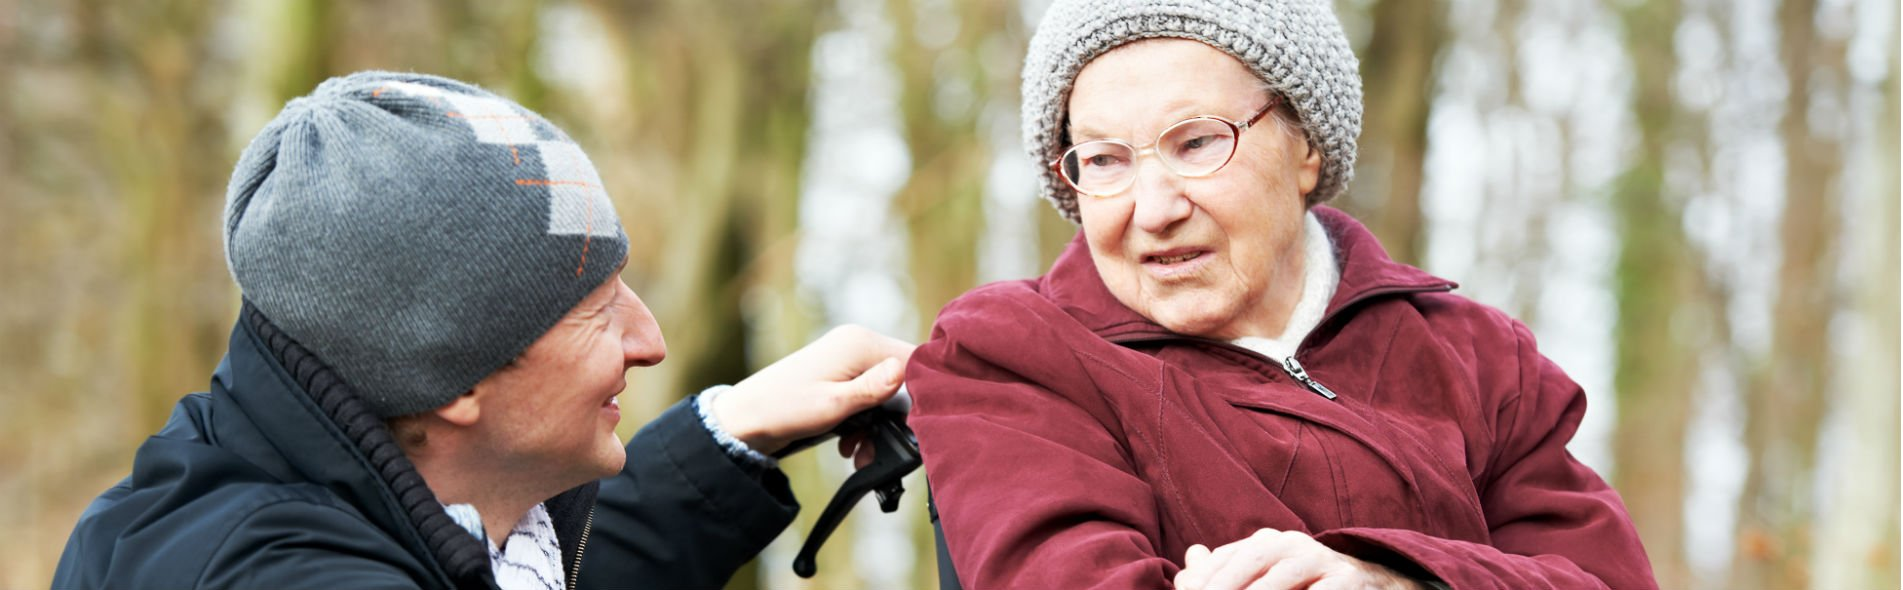 Become a carer in Derbyshire